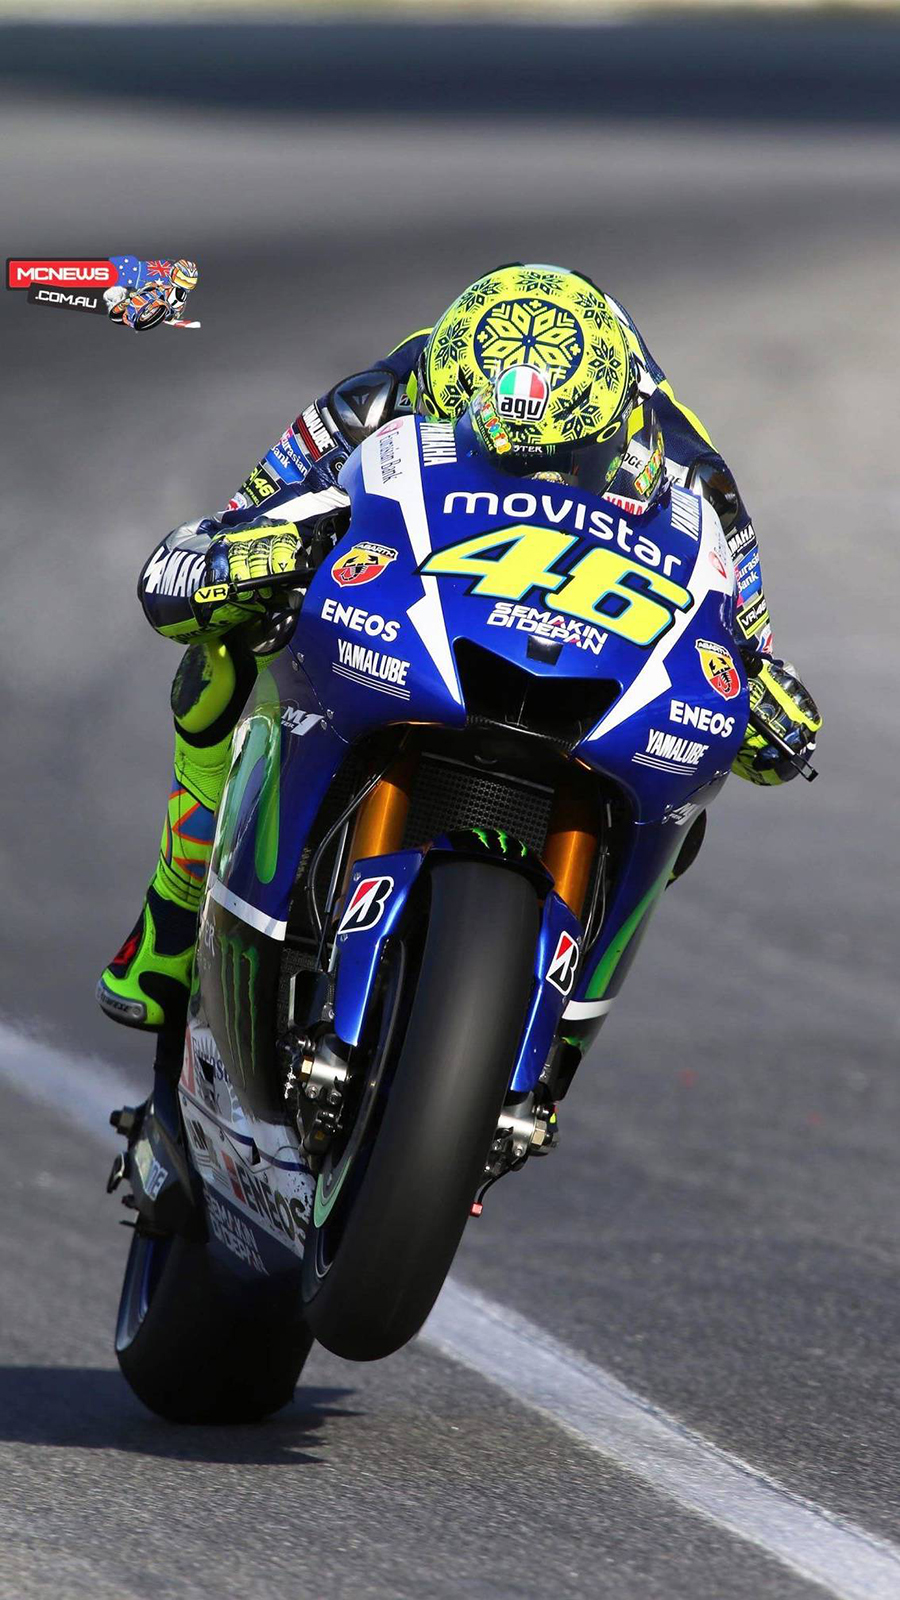 Rossi Racing Sports Bike Free Wallpapers Now Download